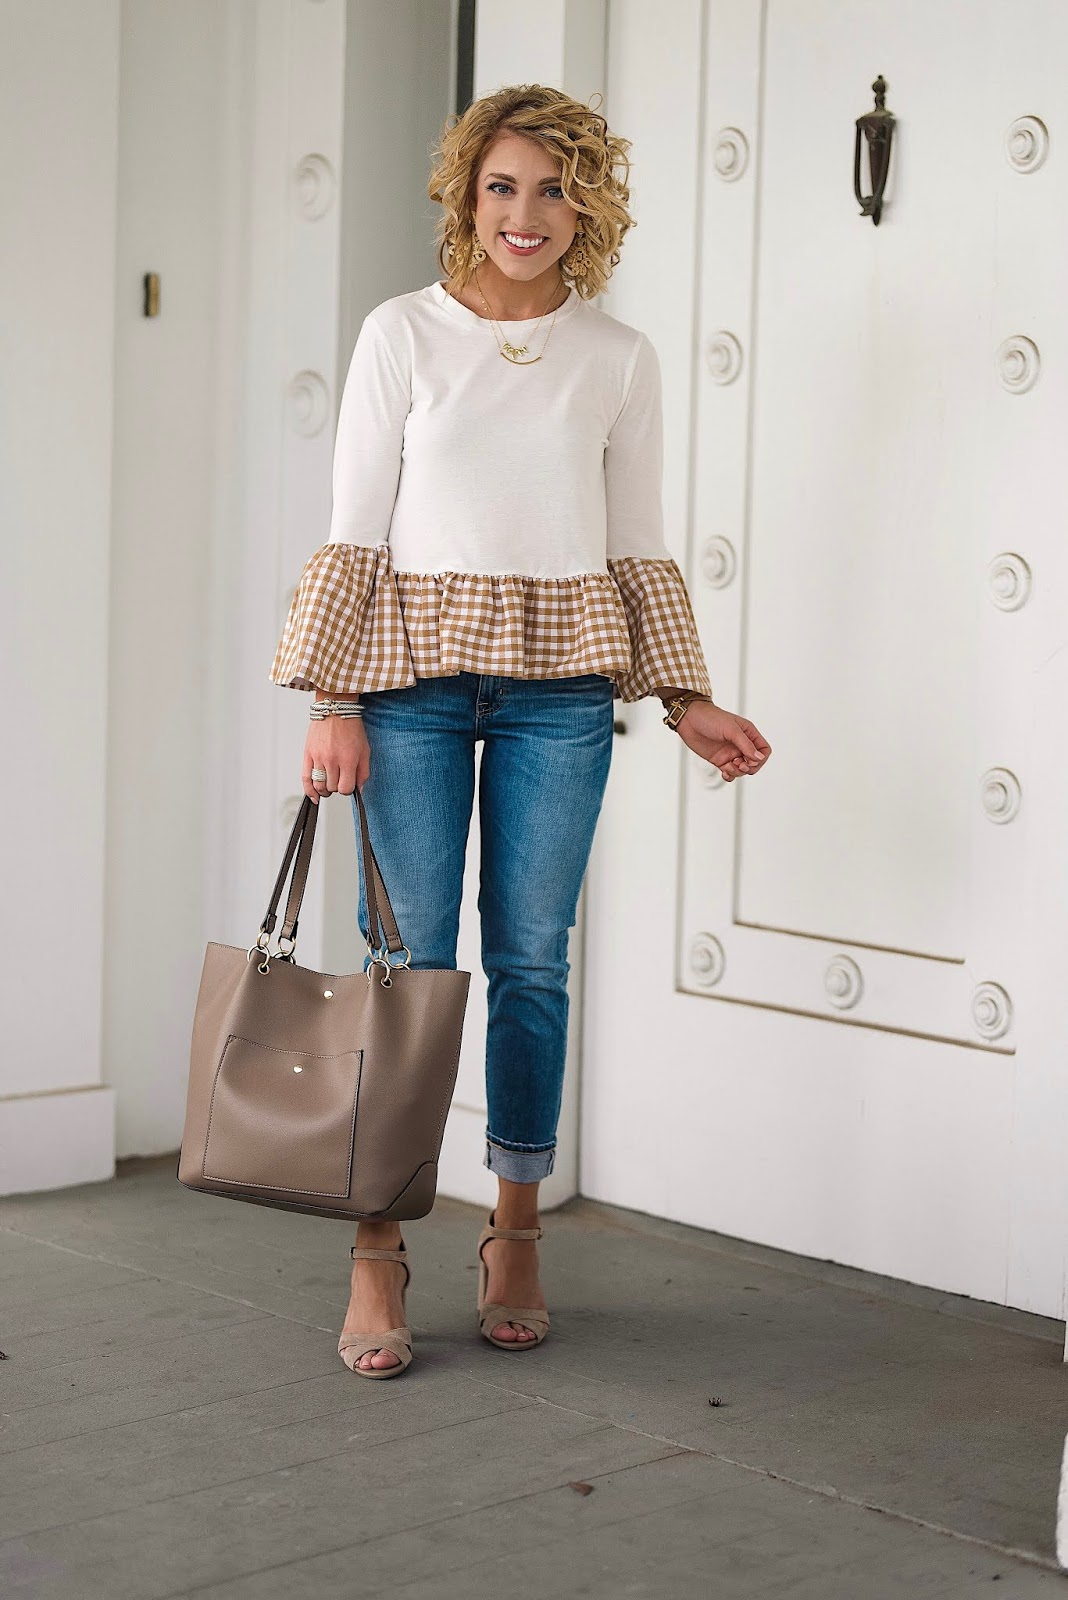 How To Add A Feminine Flair To Boyfriend Jeans + The Cutest Gingham Ruffle Peplum Top of All Time - Something Delightful Blog @racheltimmerman #somethingdelightfulblog #racheltimmerman #femininefashion